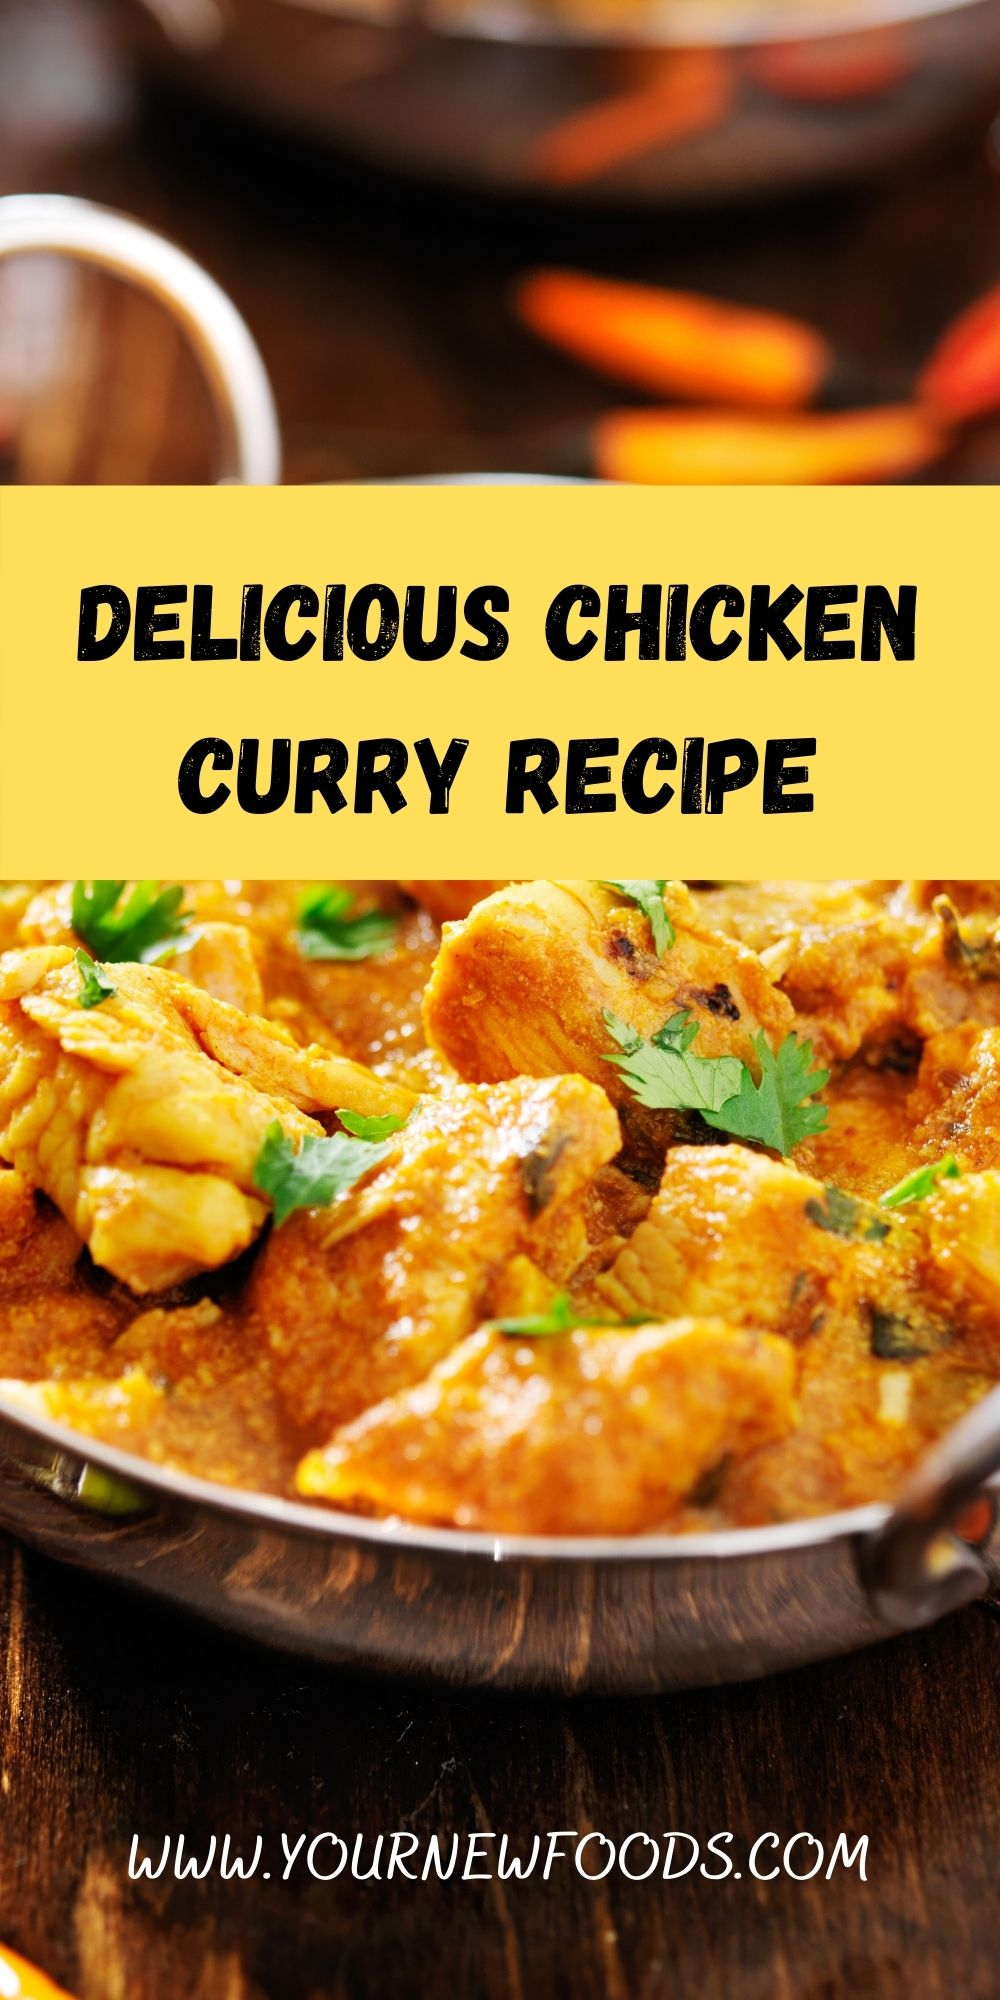 advertising banner showing delicious Chicken Curry Recipe in silver Balti style dishes with bowls of rice on a wooden table